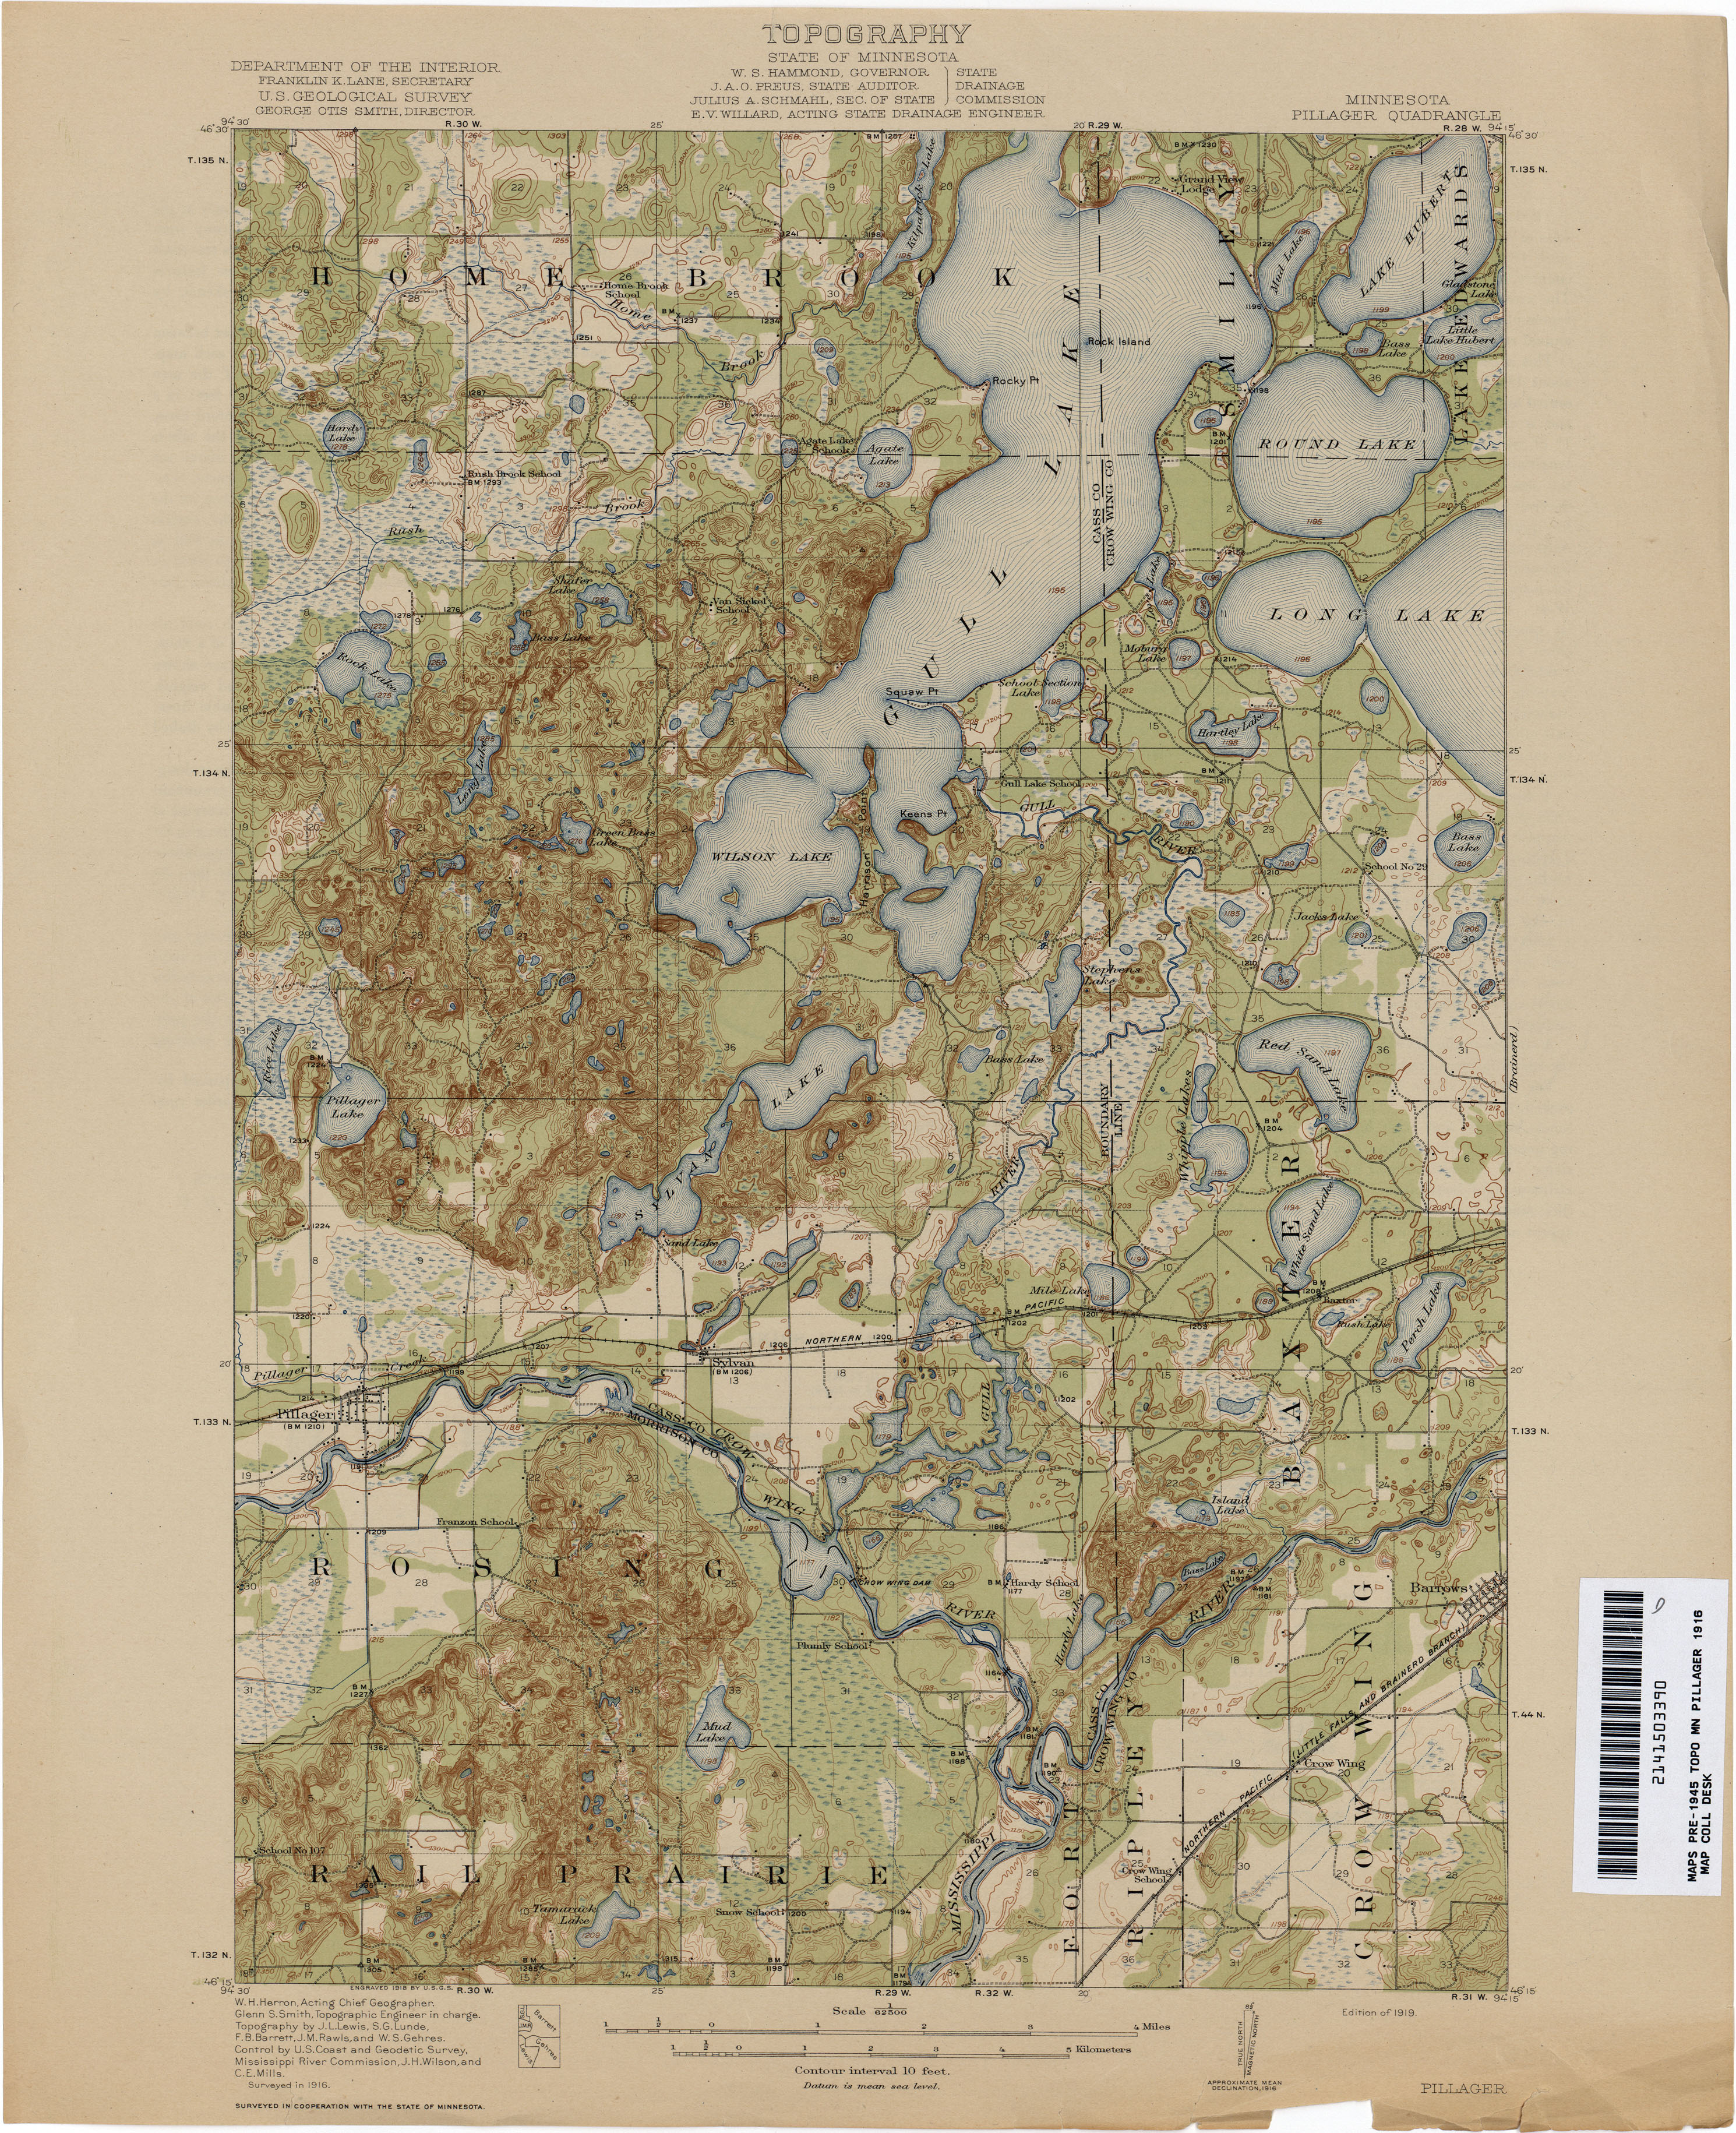 Minnesota Historical Topographic Maps - Perry-Castañeda Map ... on